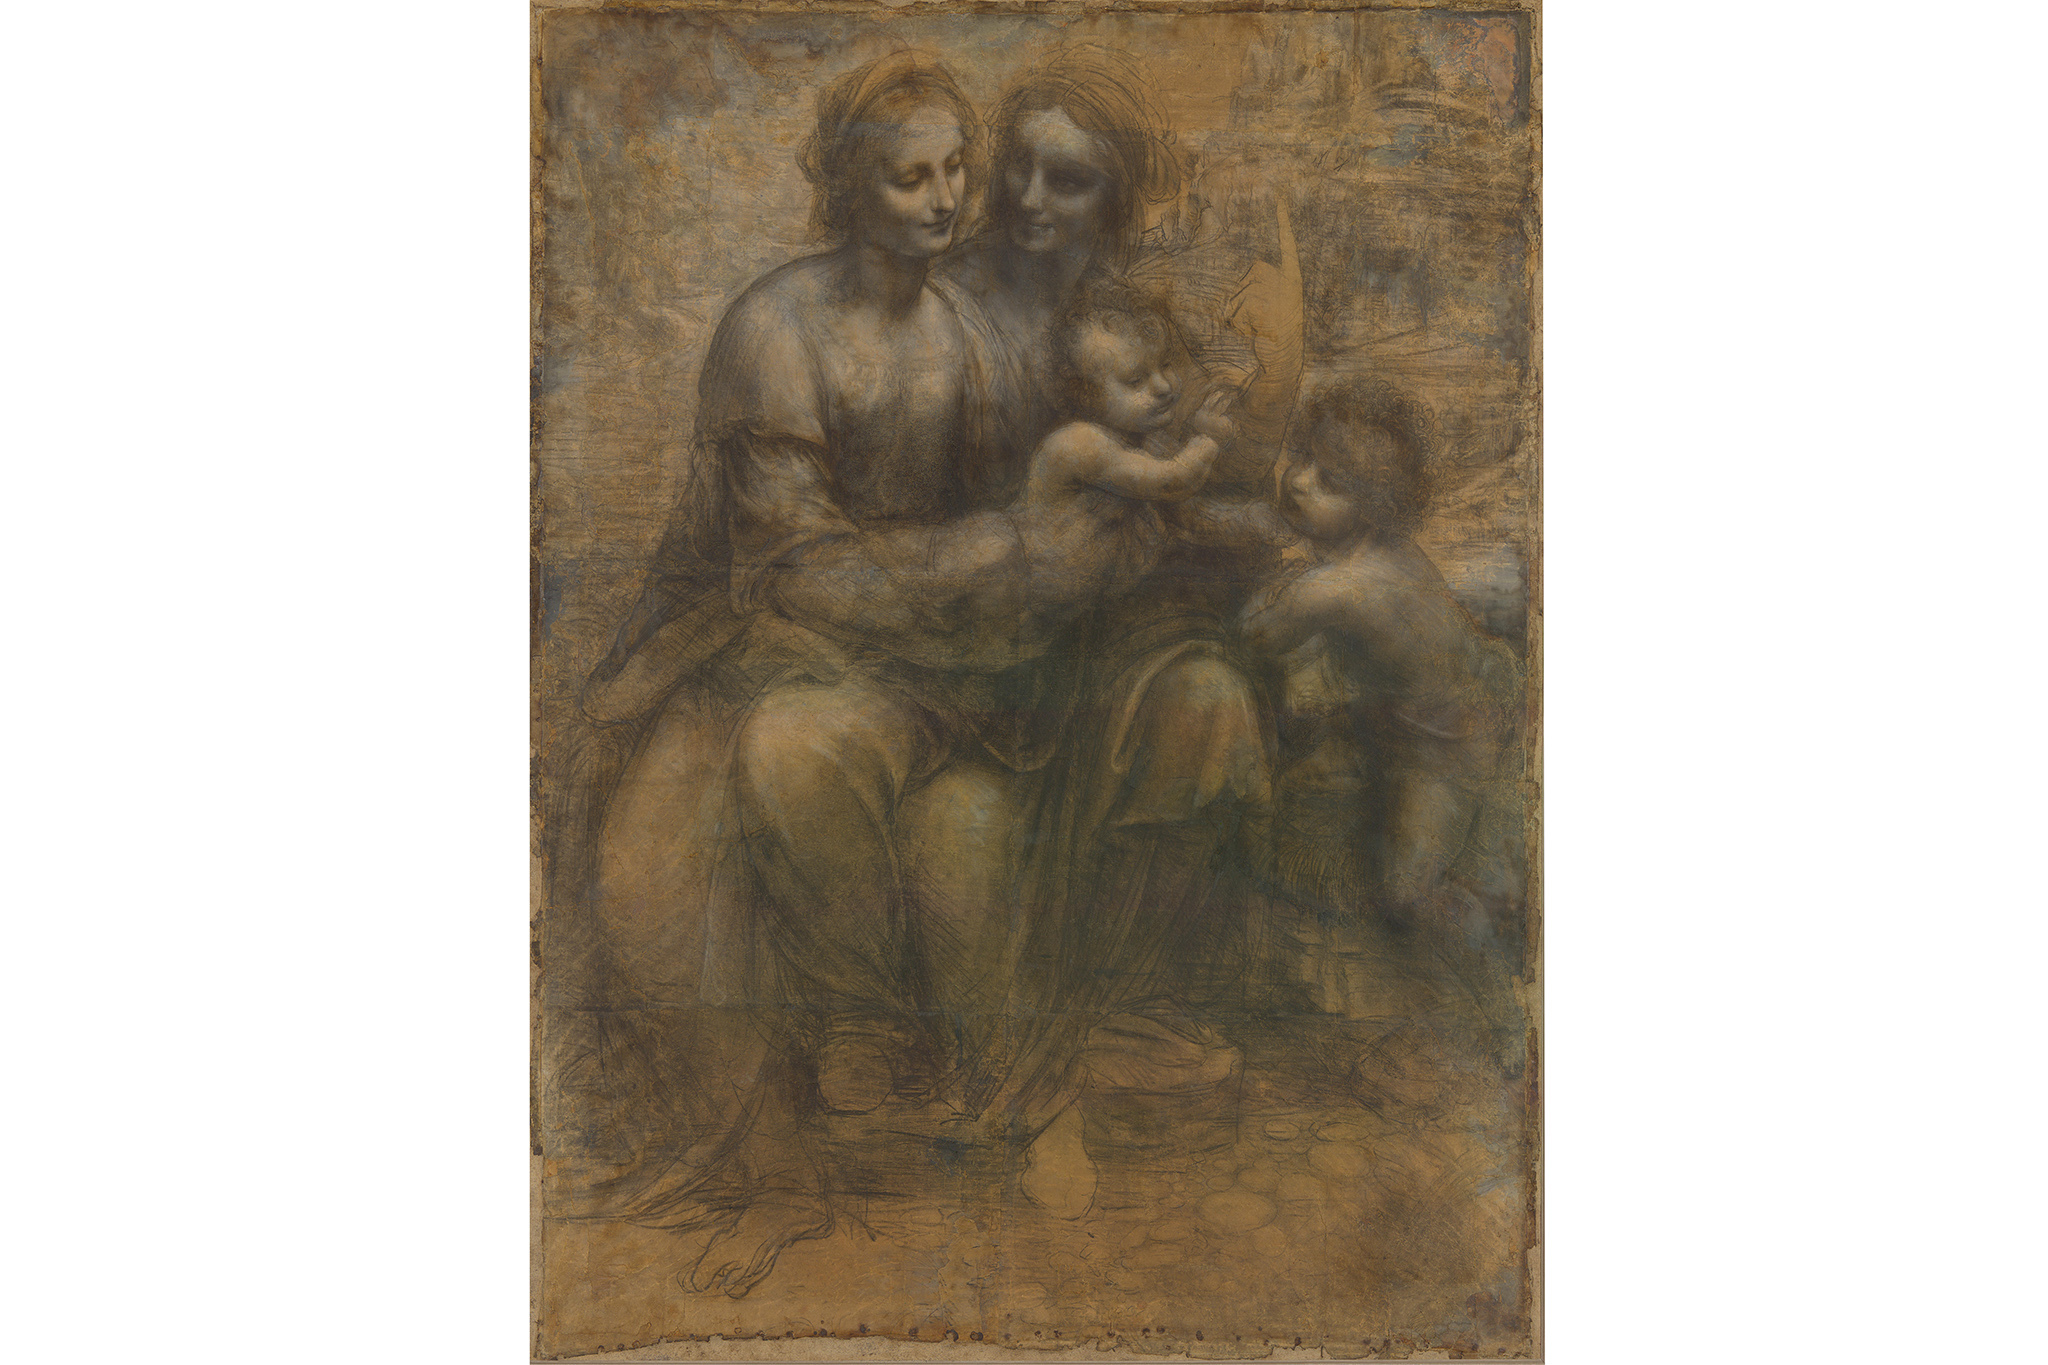 Leonardo da Vinci, The Virgin and Child with St Anne and St John the Baptist